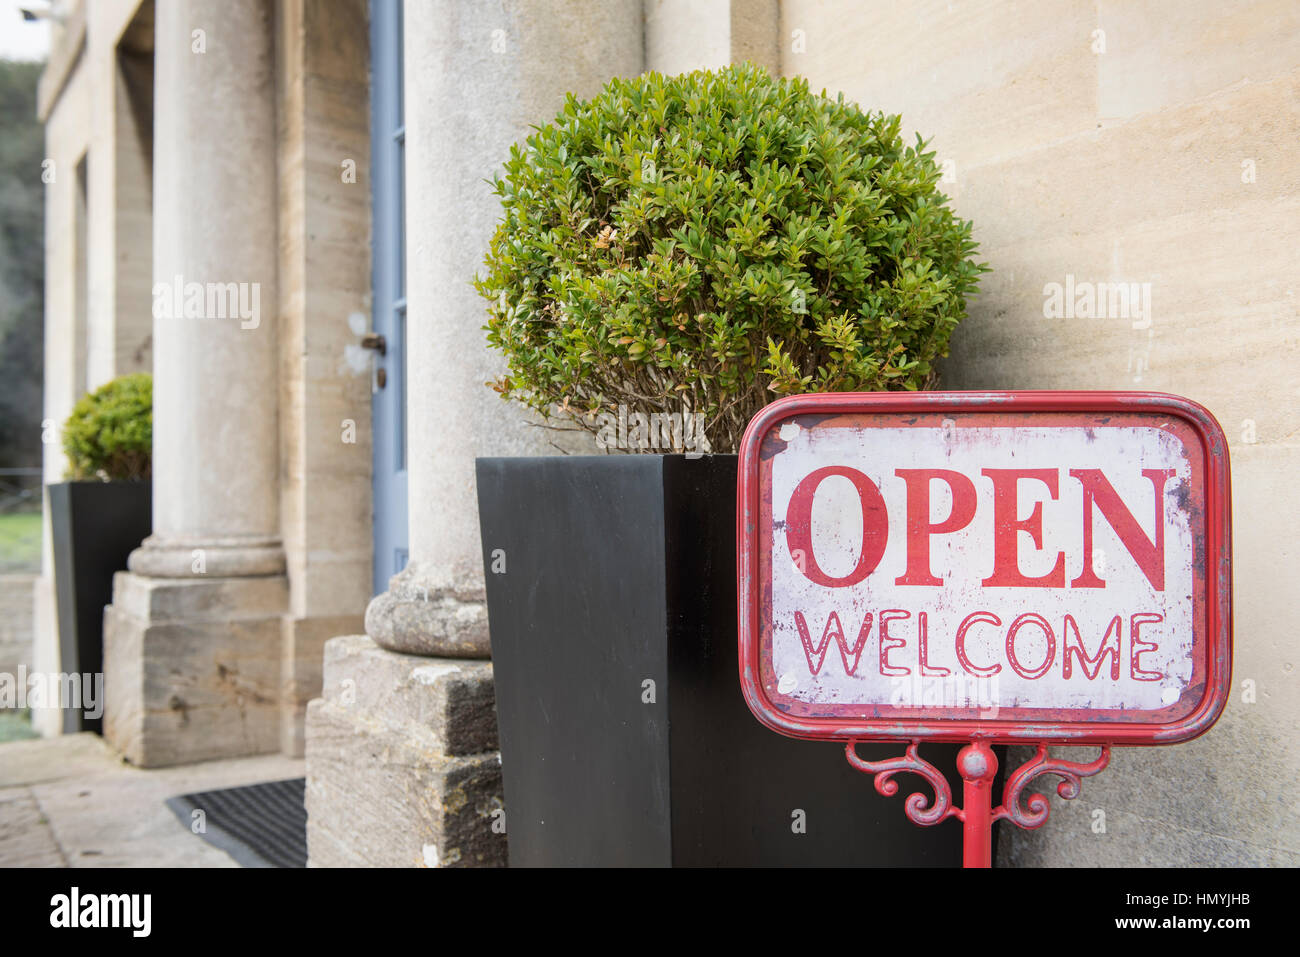 Welcome sign at The Painswick Hotel, near Stroud, Gloucestershire UK Stock Photo